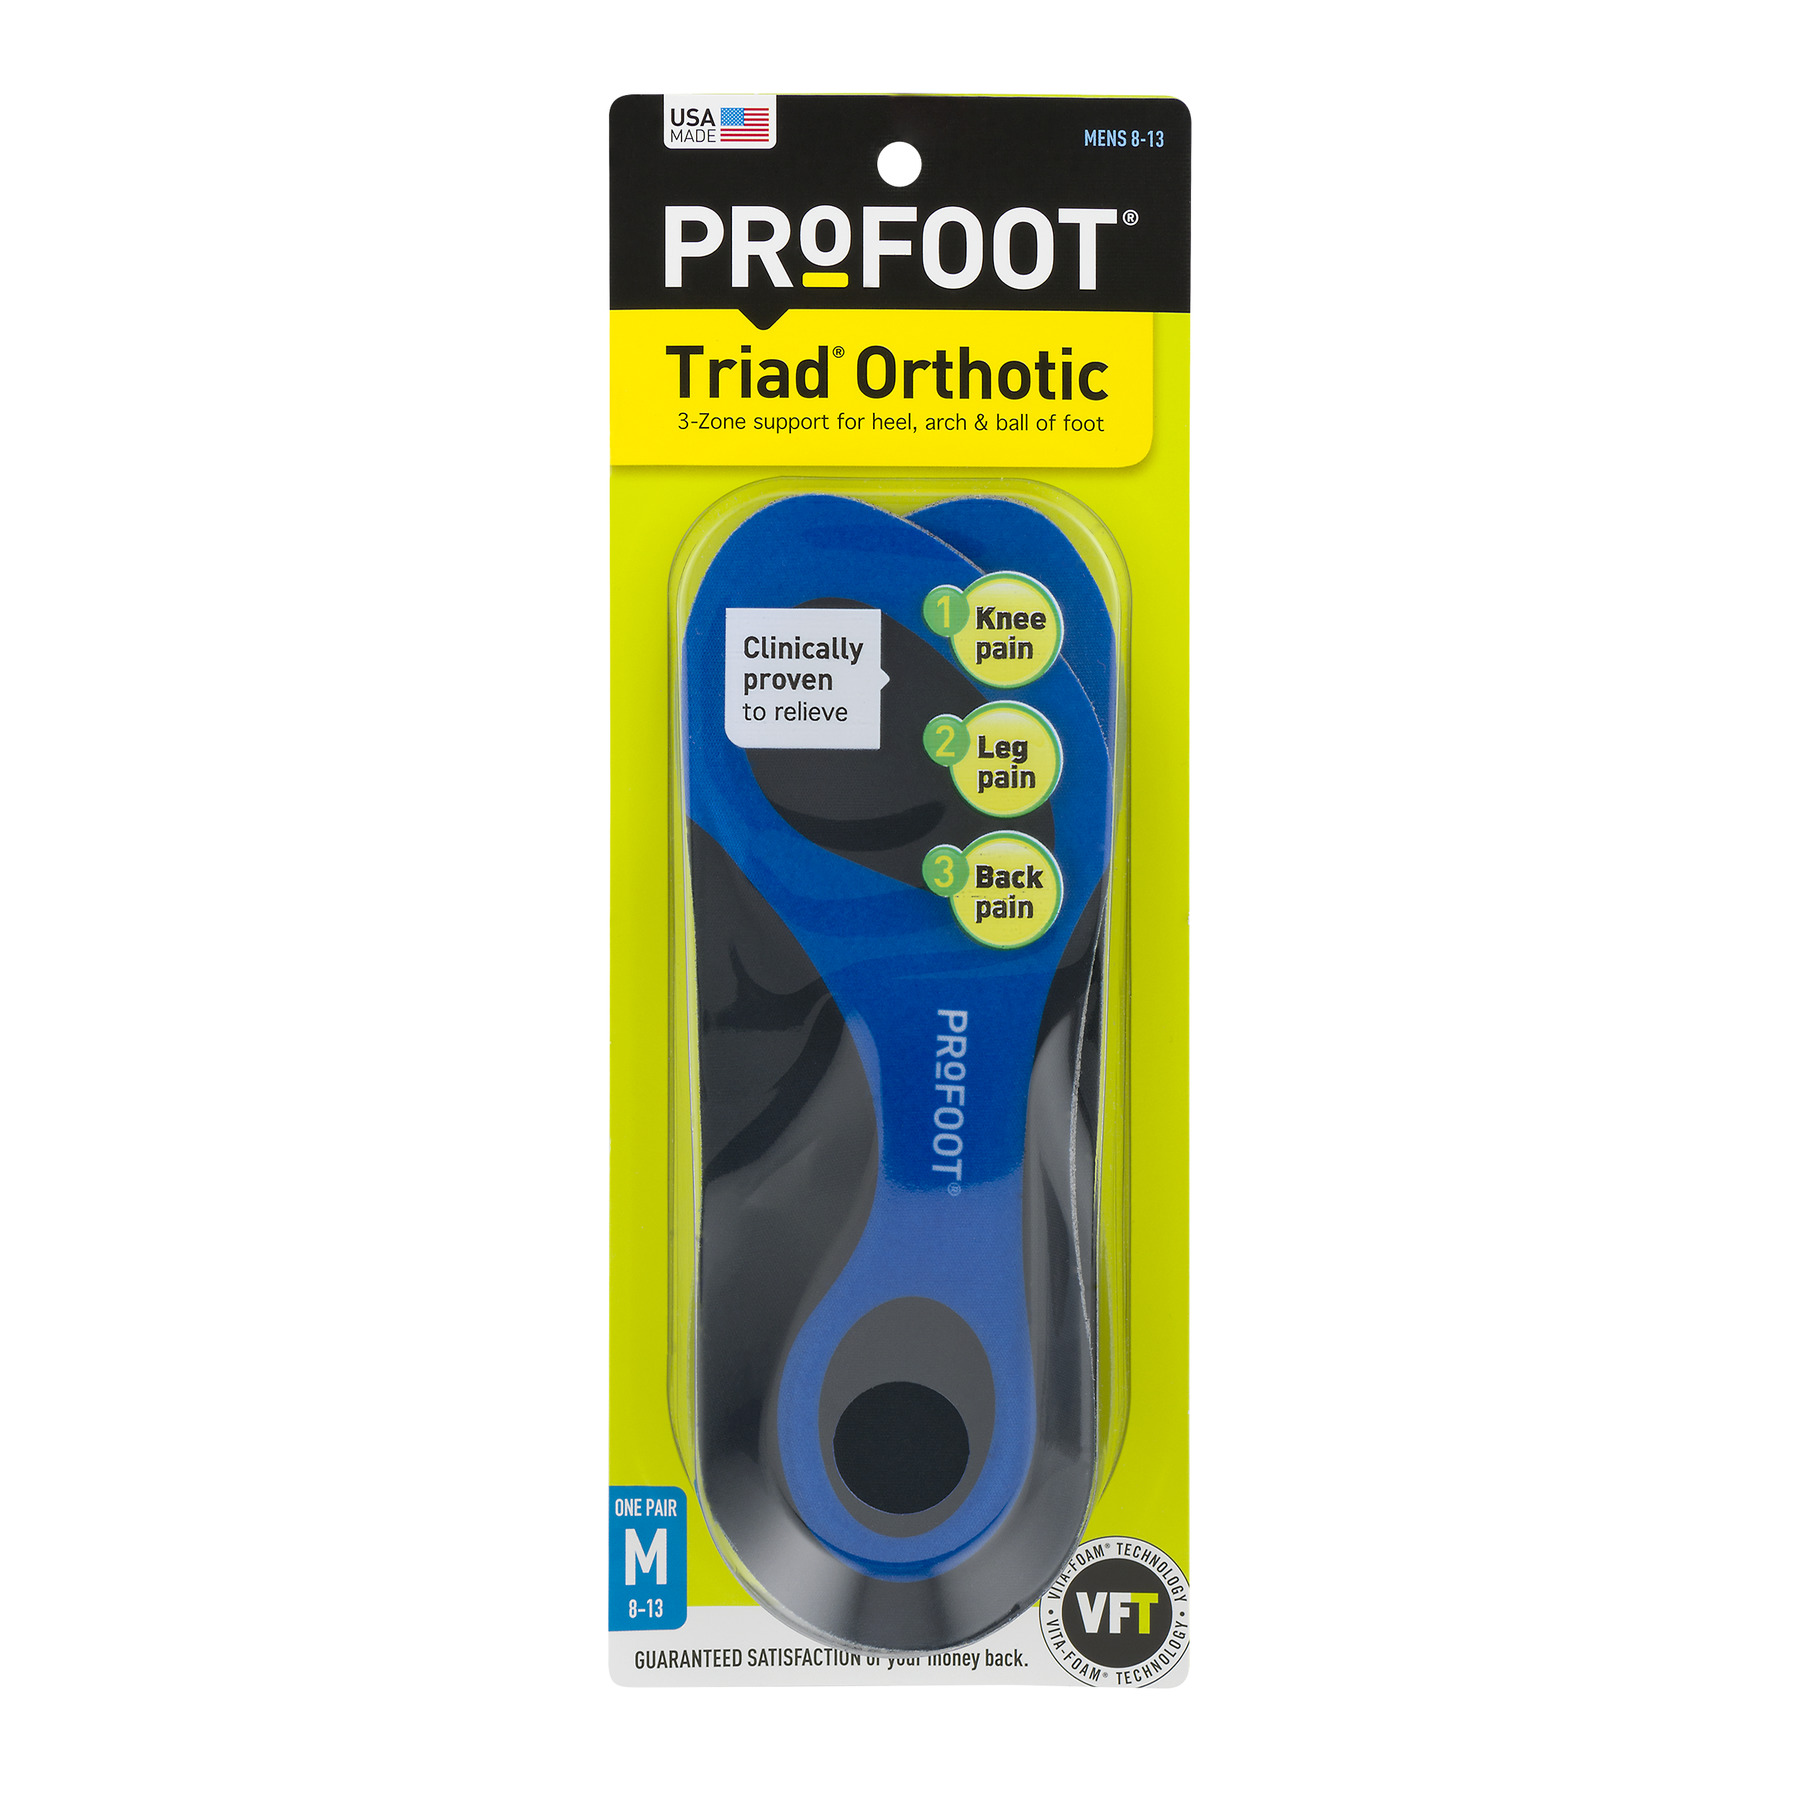 Profoot Triad Orthotic Mens 8-13, 1.0 CT